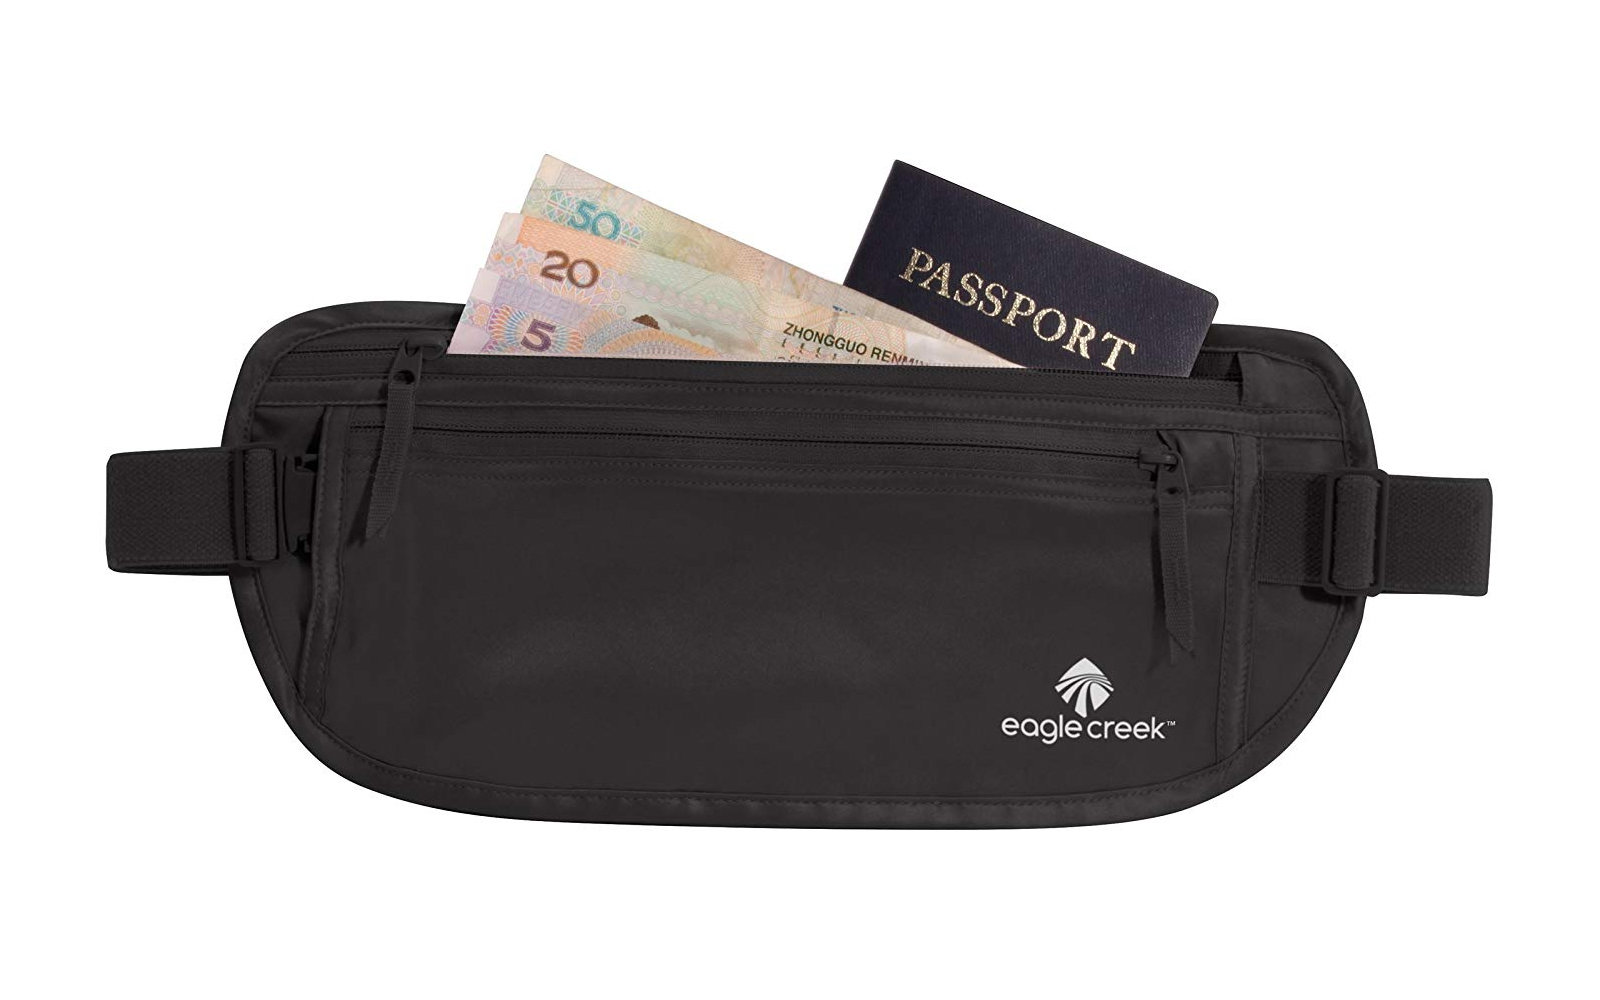 900b878d7032 The Best Money Belts for Travel in 2019 | Travel + Leisure